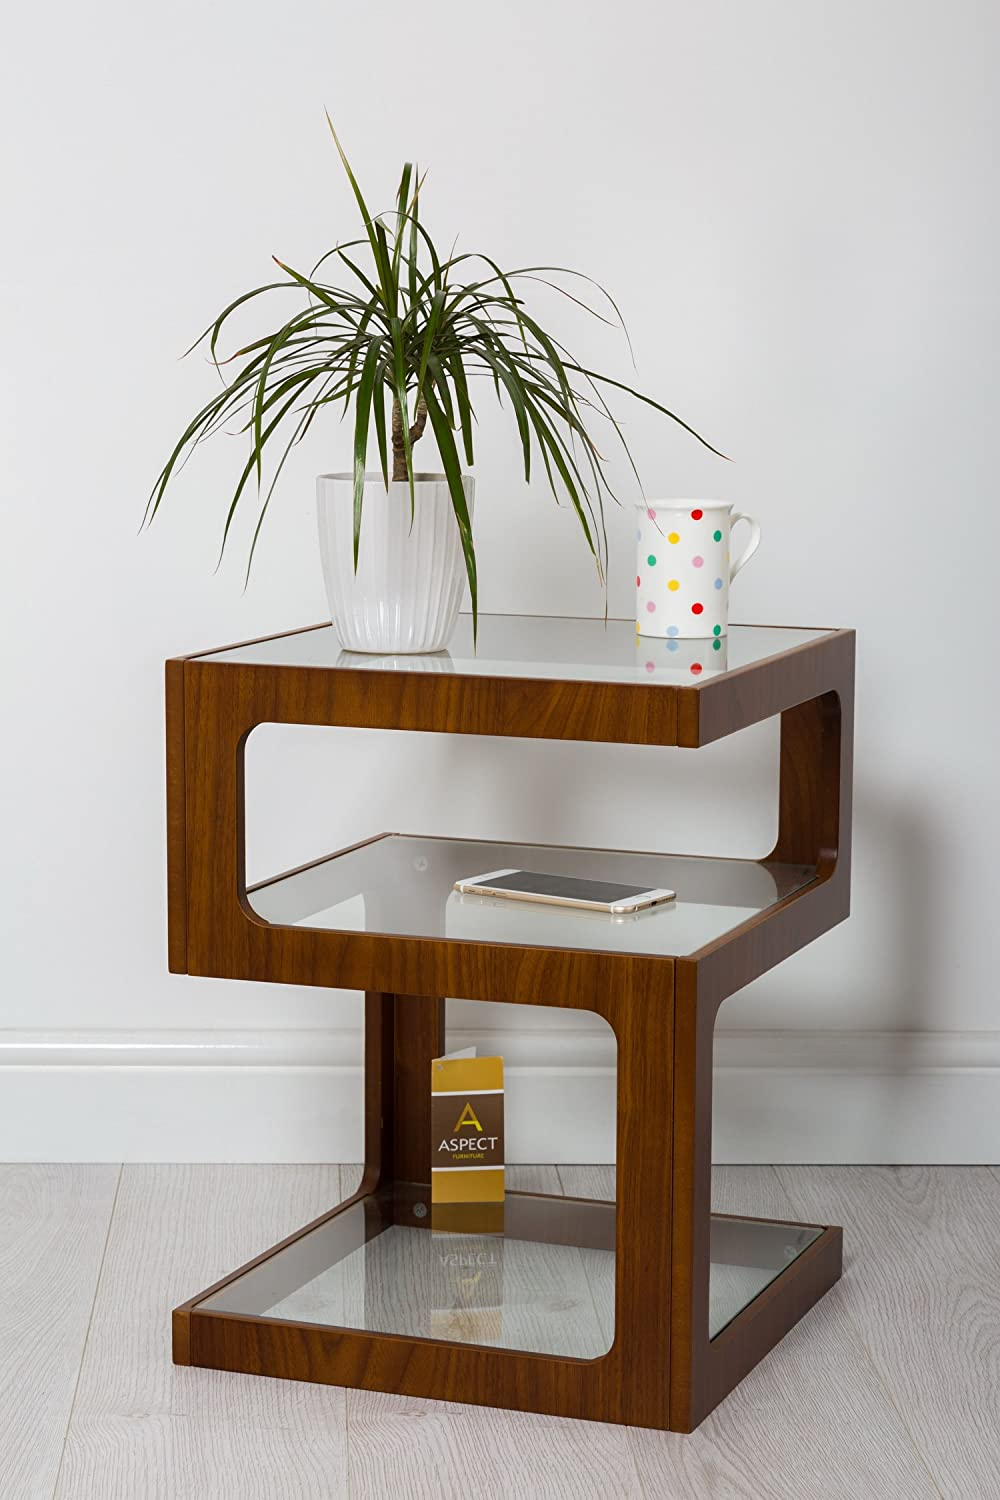 Aspect rossini triple level side tablecoffee tableend tablelamp aspect rossini triple level side tablecoffee tableend tablelamp table walnut wood amazon kitchen home aloadofball Image collections